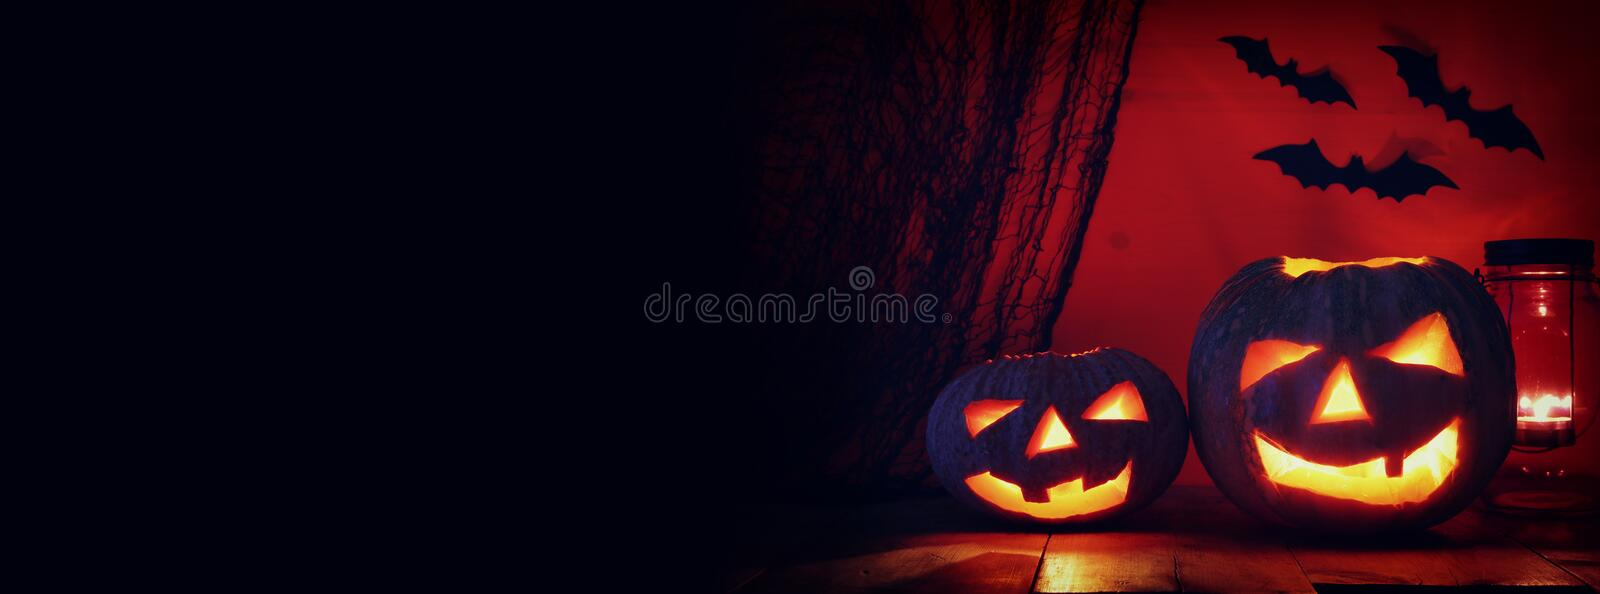 Halloween Pumpkin on wooden table in front of spooky dark background. Jack o lantern.  stock image